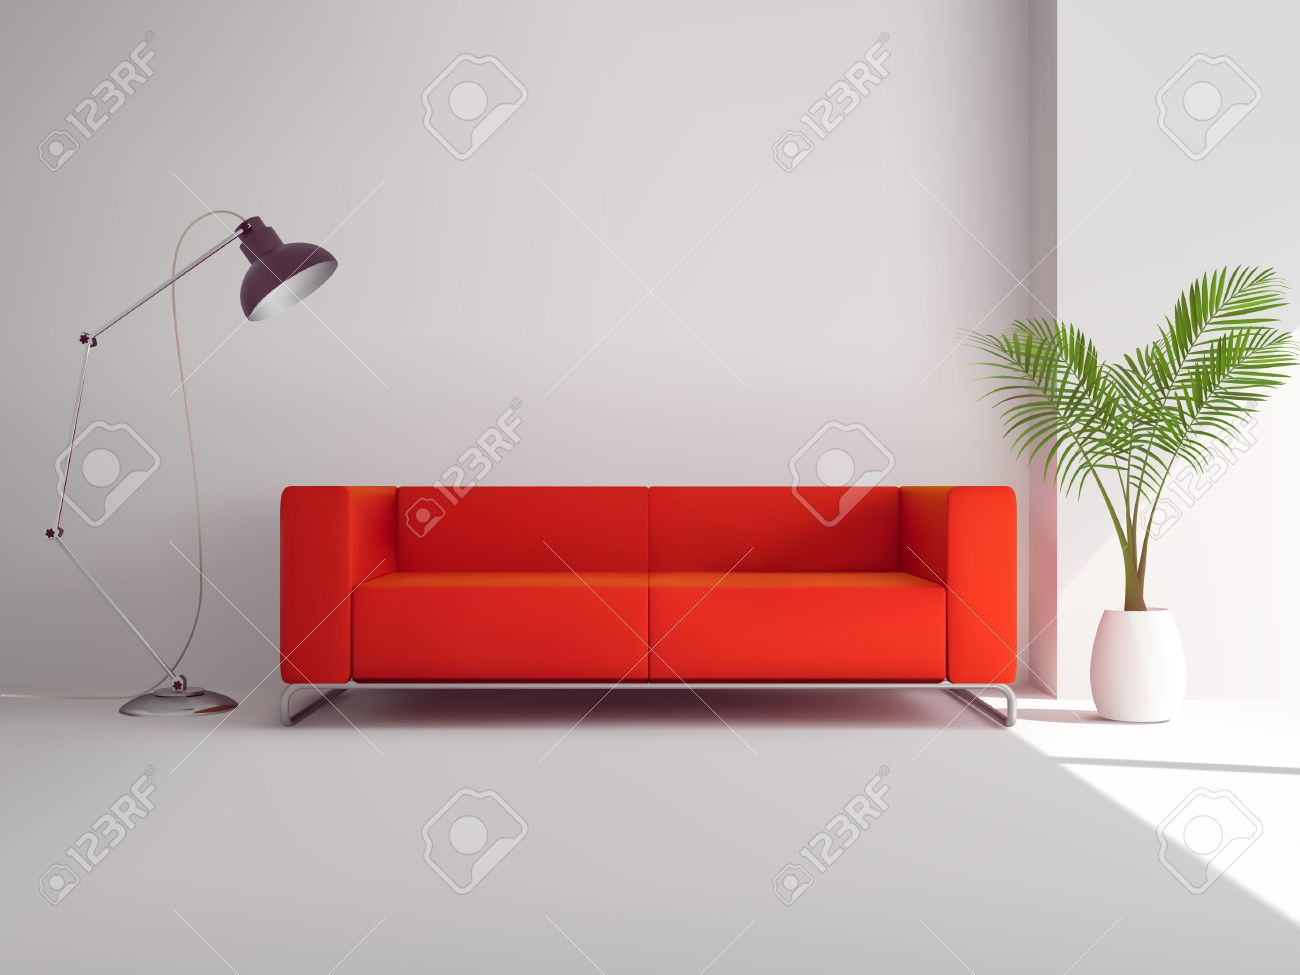 Charmant Realistic Red Sofa With Floor Lamp And Palm Tree In Pot Interior Vector  Illustration Stock Vector